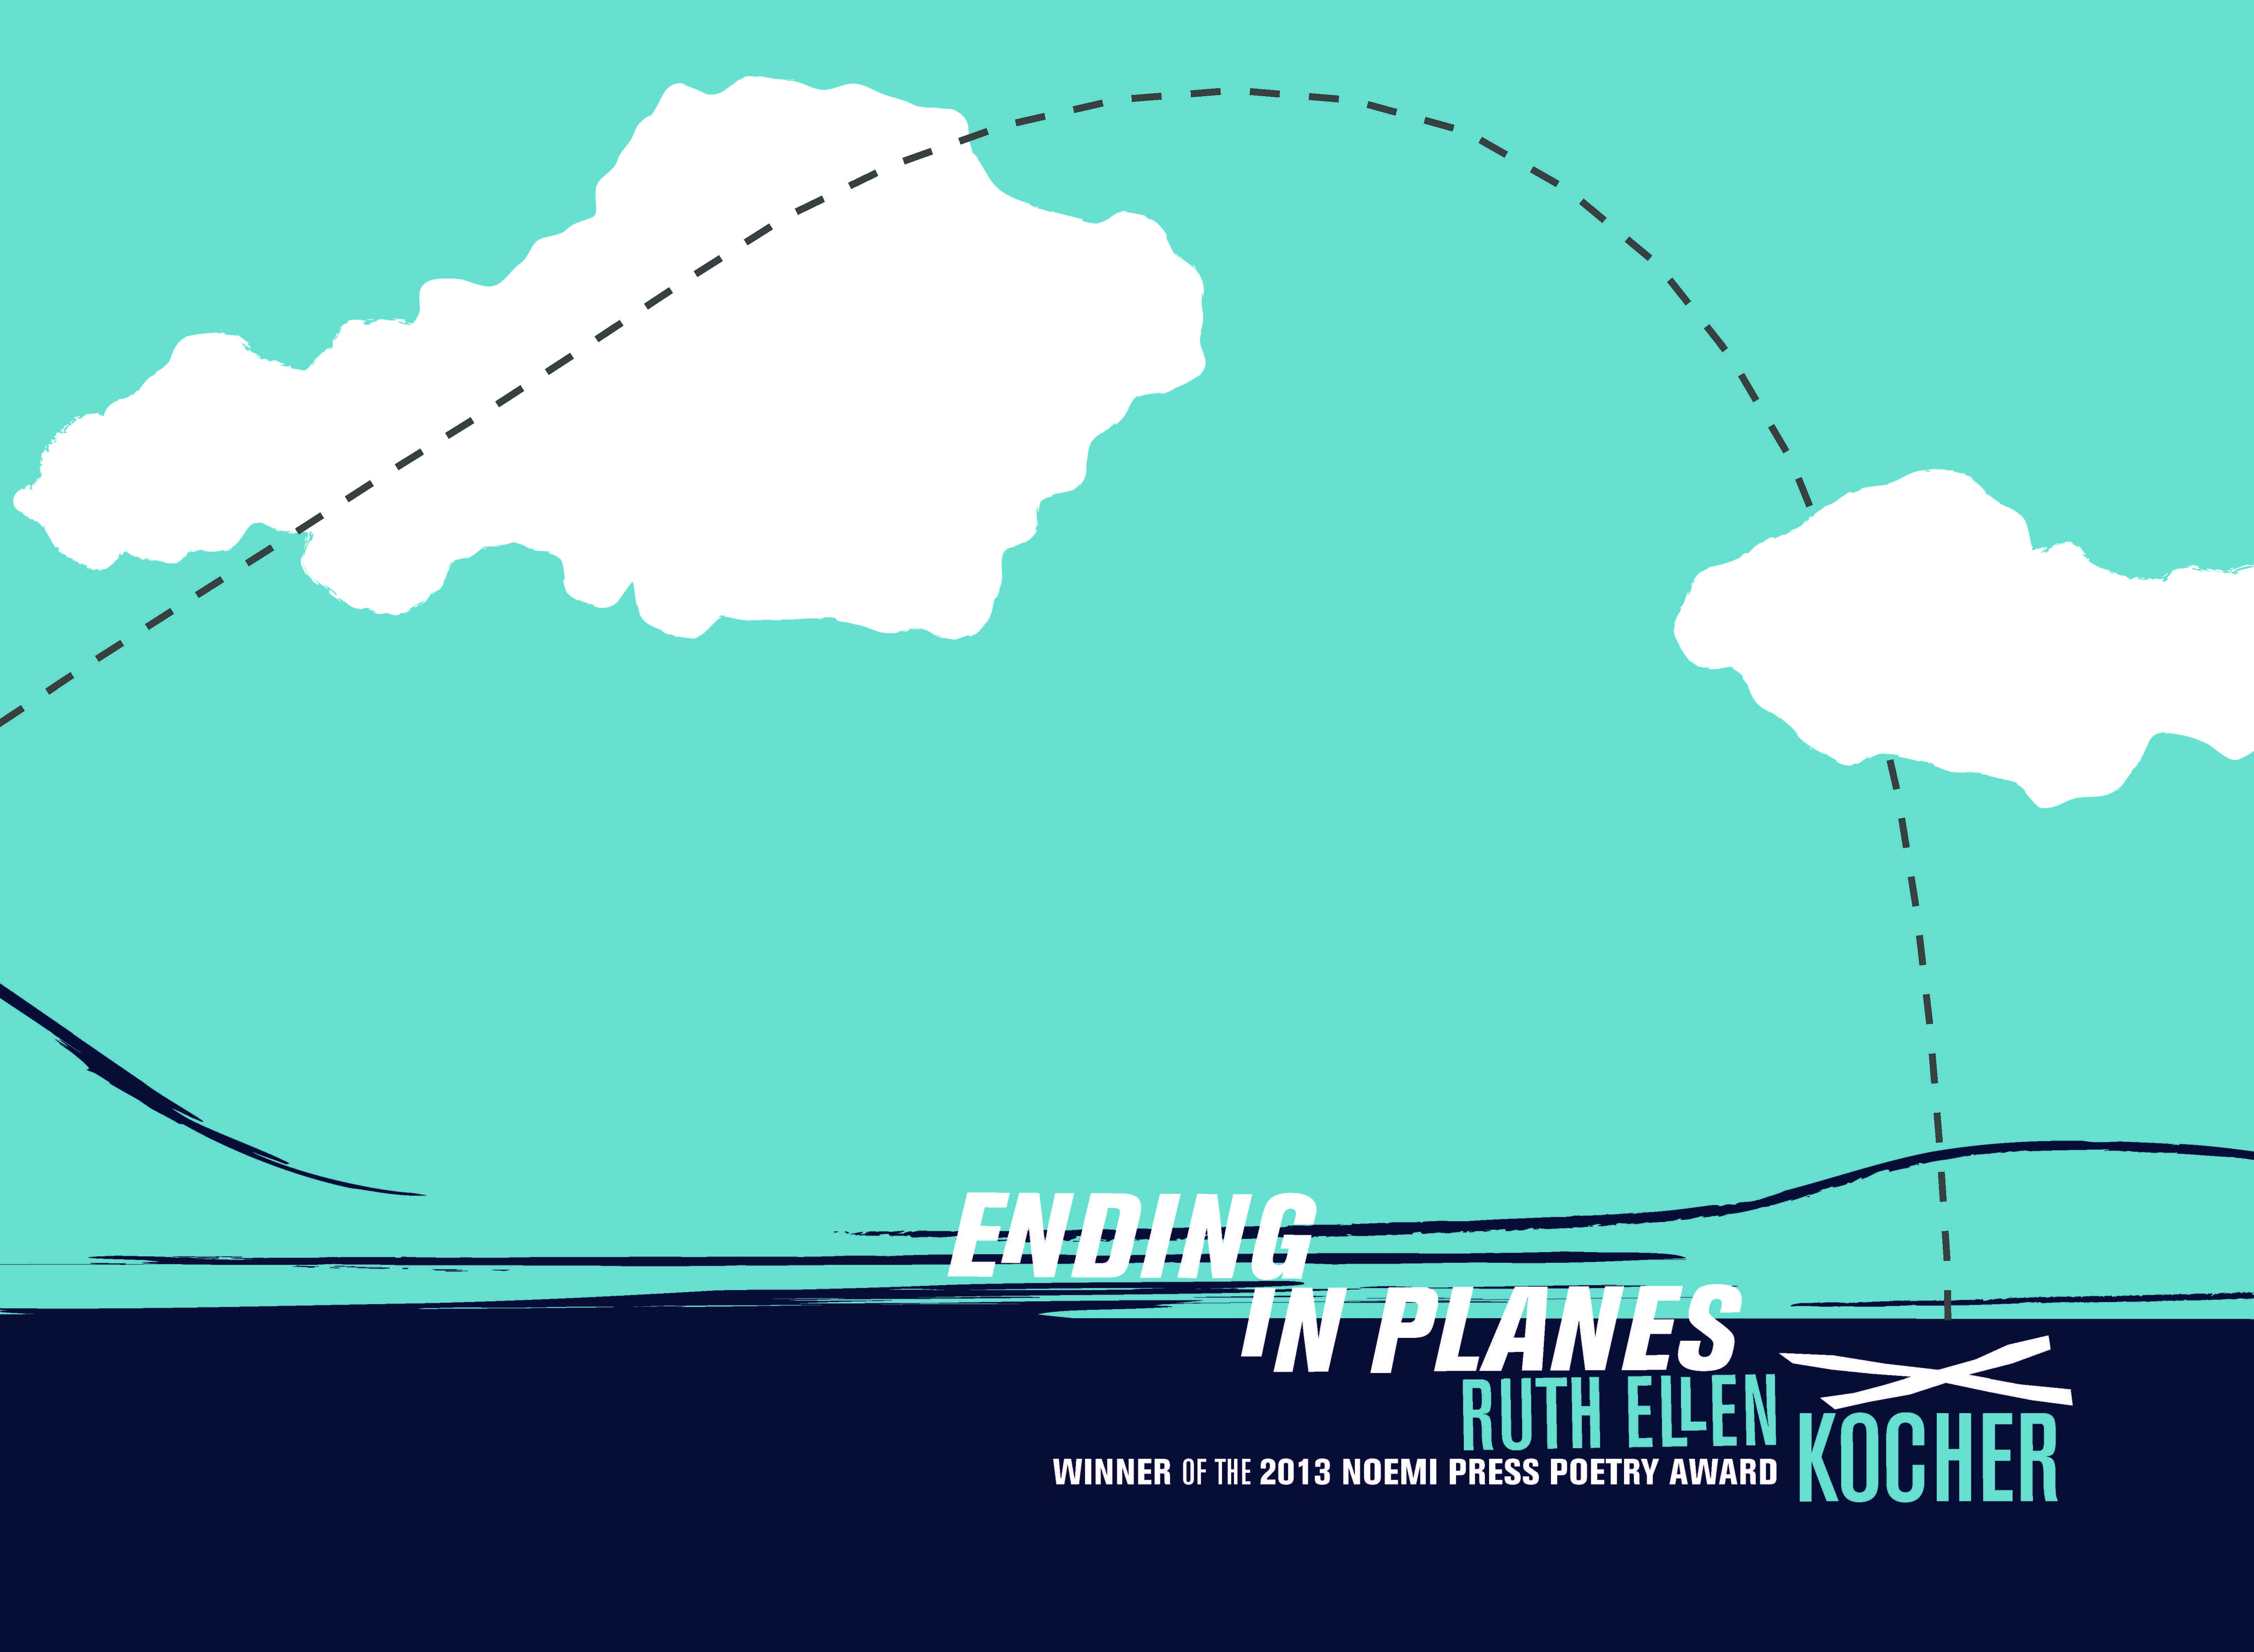 Ending in Planes book cover